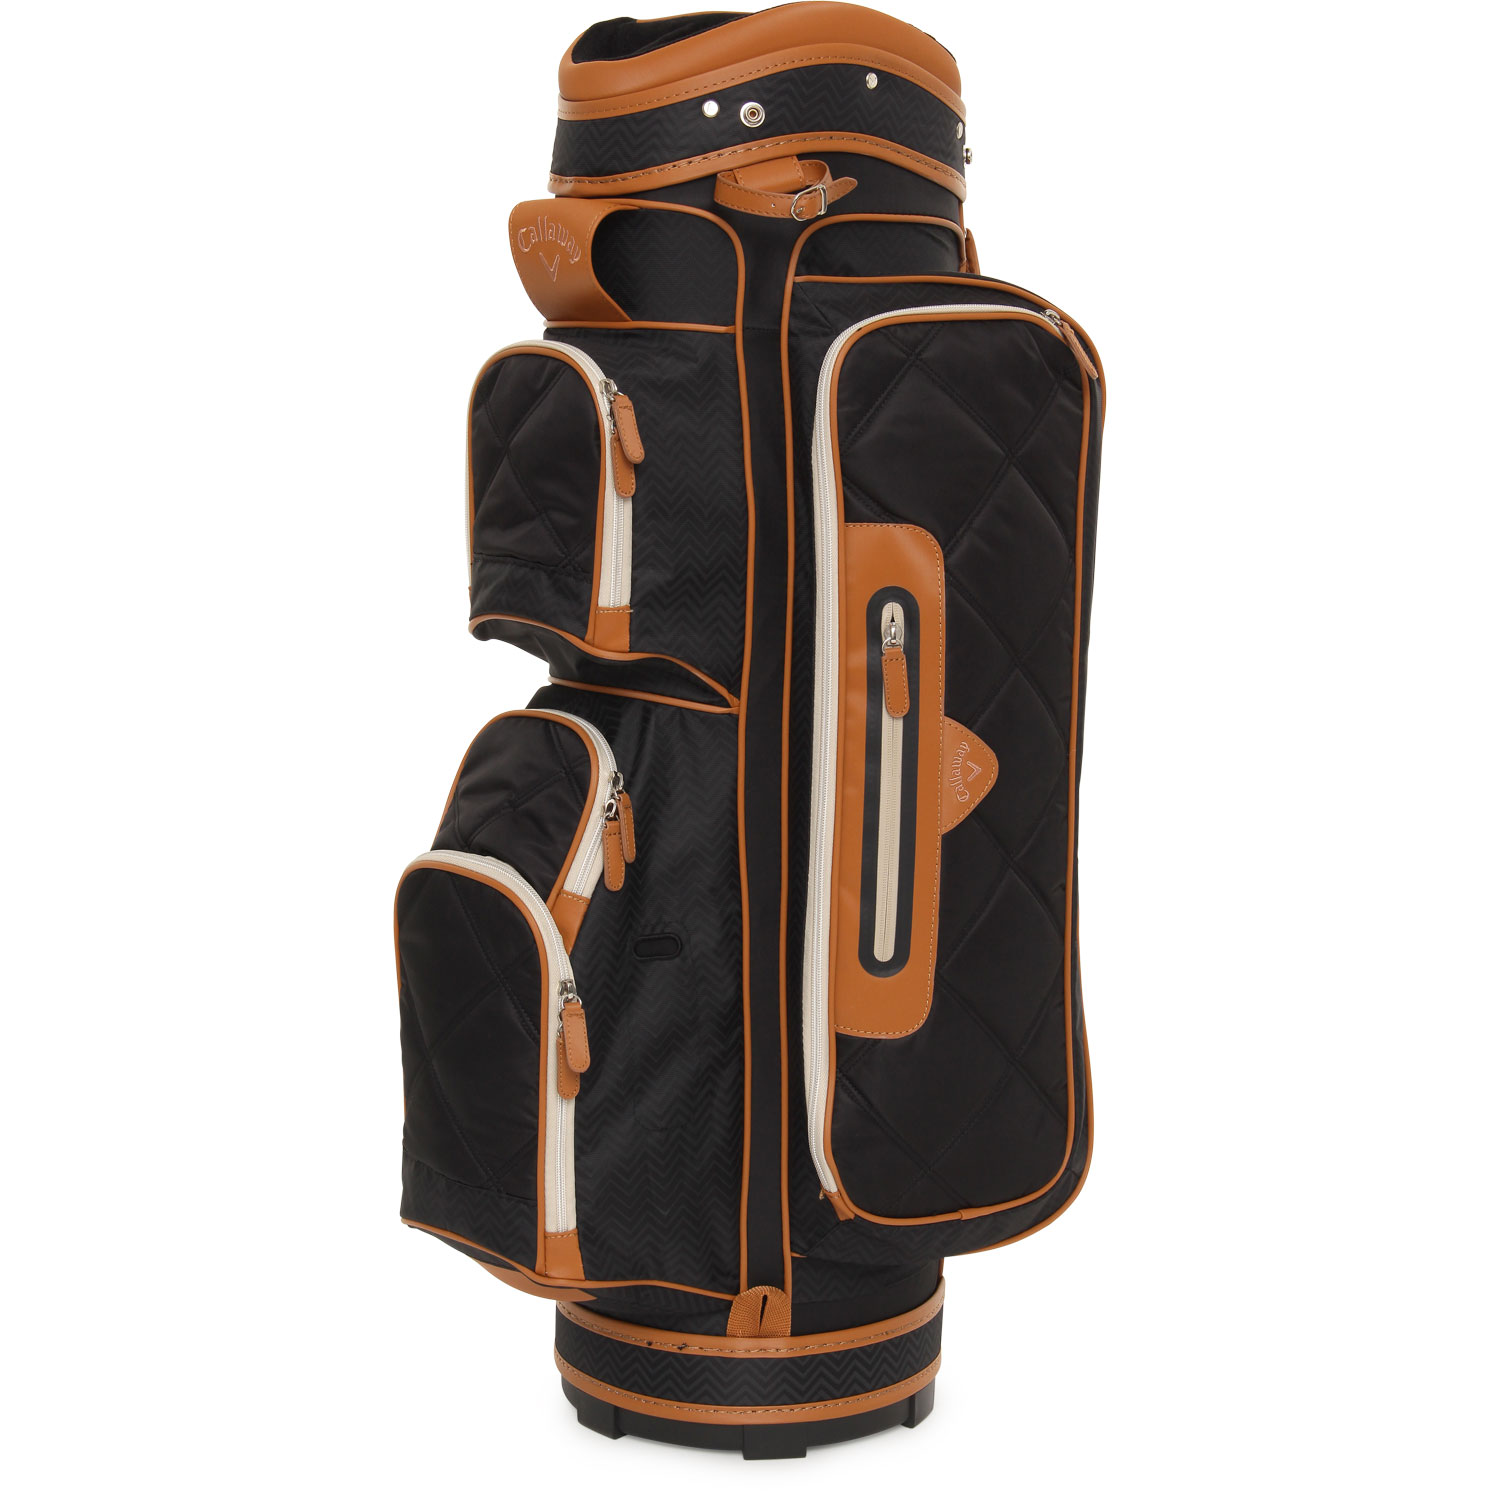 cartbags g nstig auf rechnung kaufen all4golf all4golf. Black Bedroom Furniture Sets. Home Design Ideas